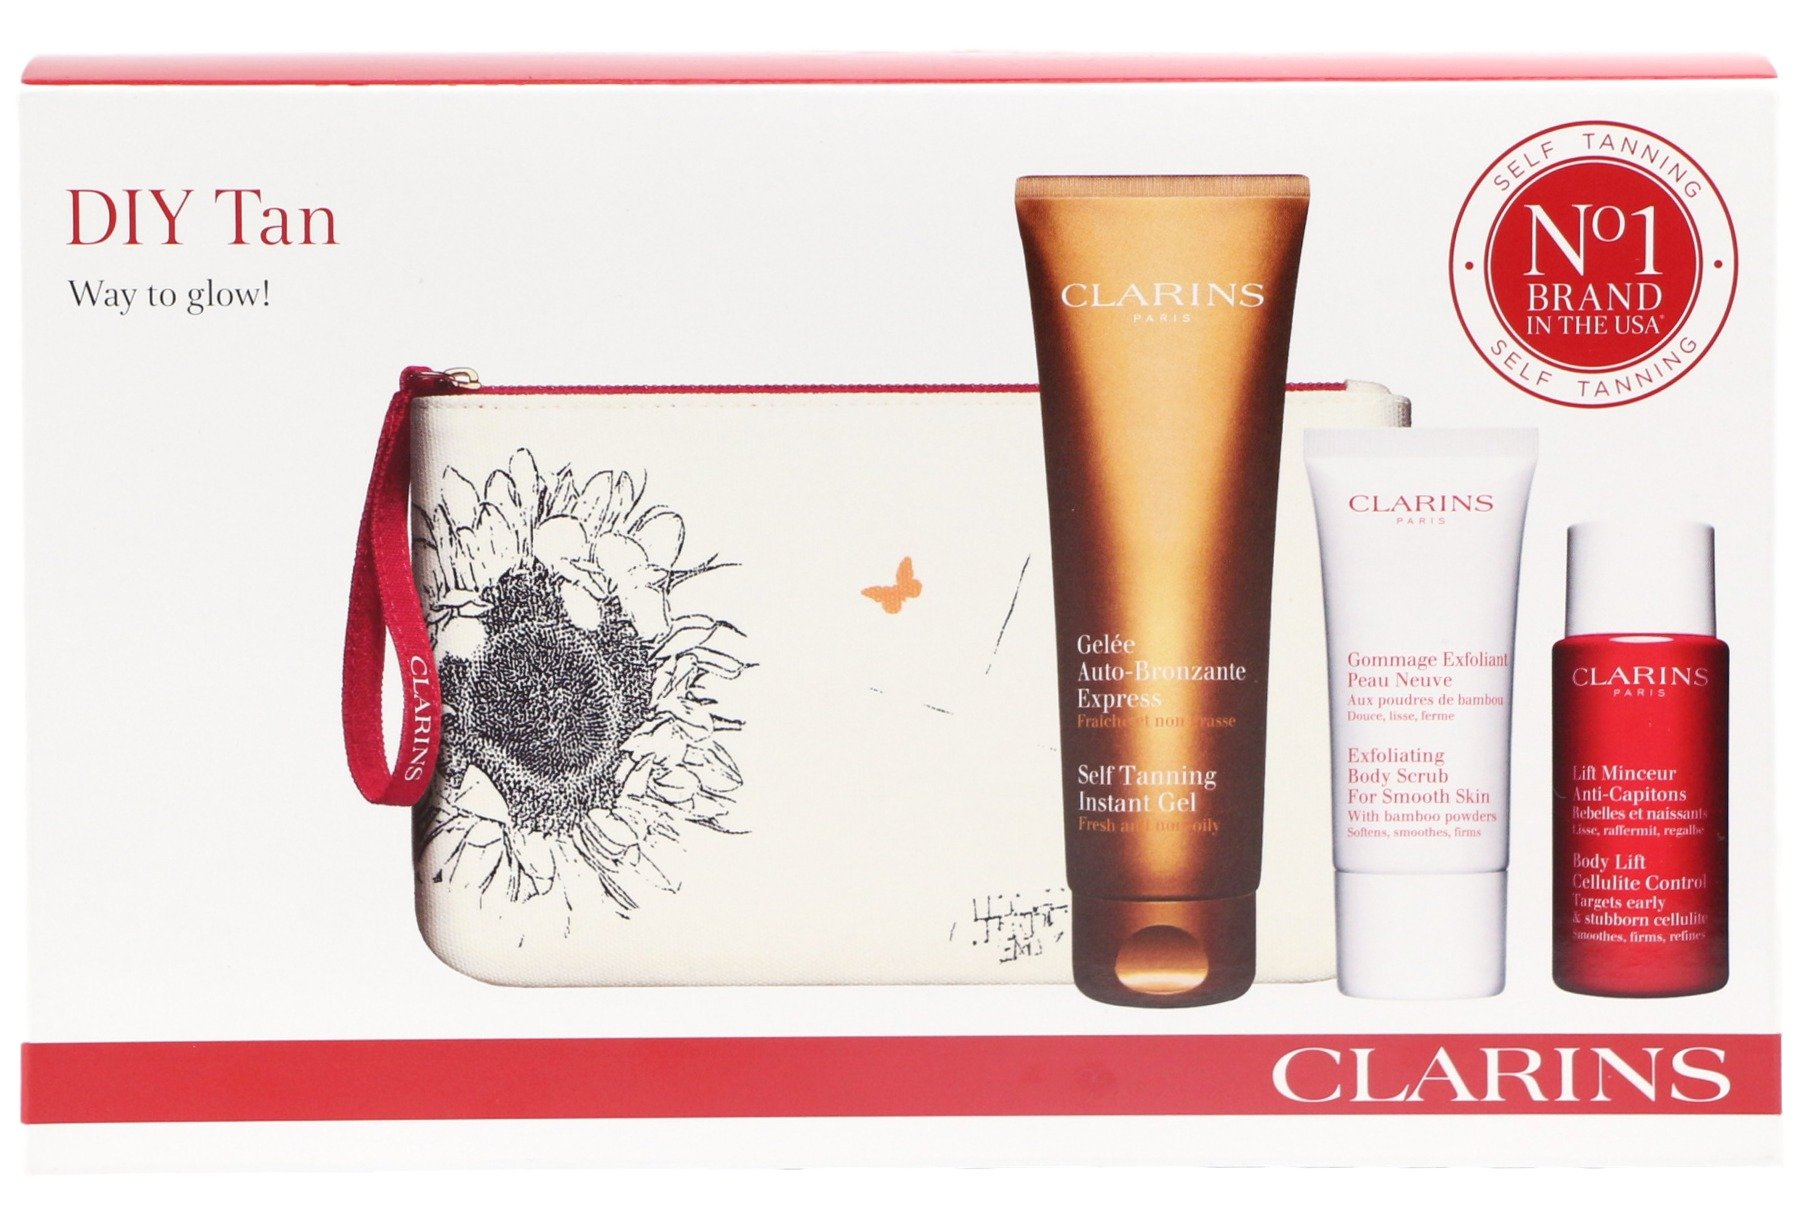 Clarins DIY Tan ''Way to glow'' Self Taning Instant Gel 3 Items Gifts Set Body Lift Cellulite Control & Body Scrub